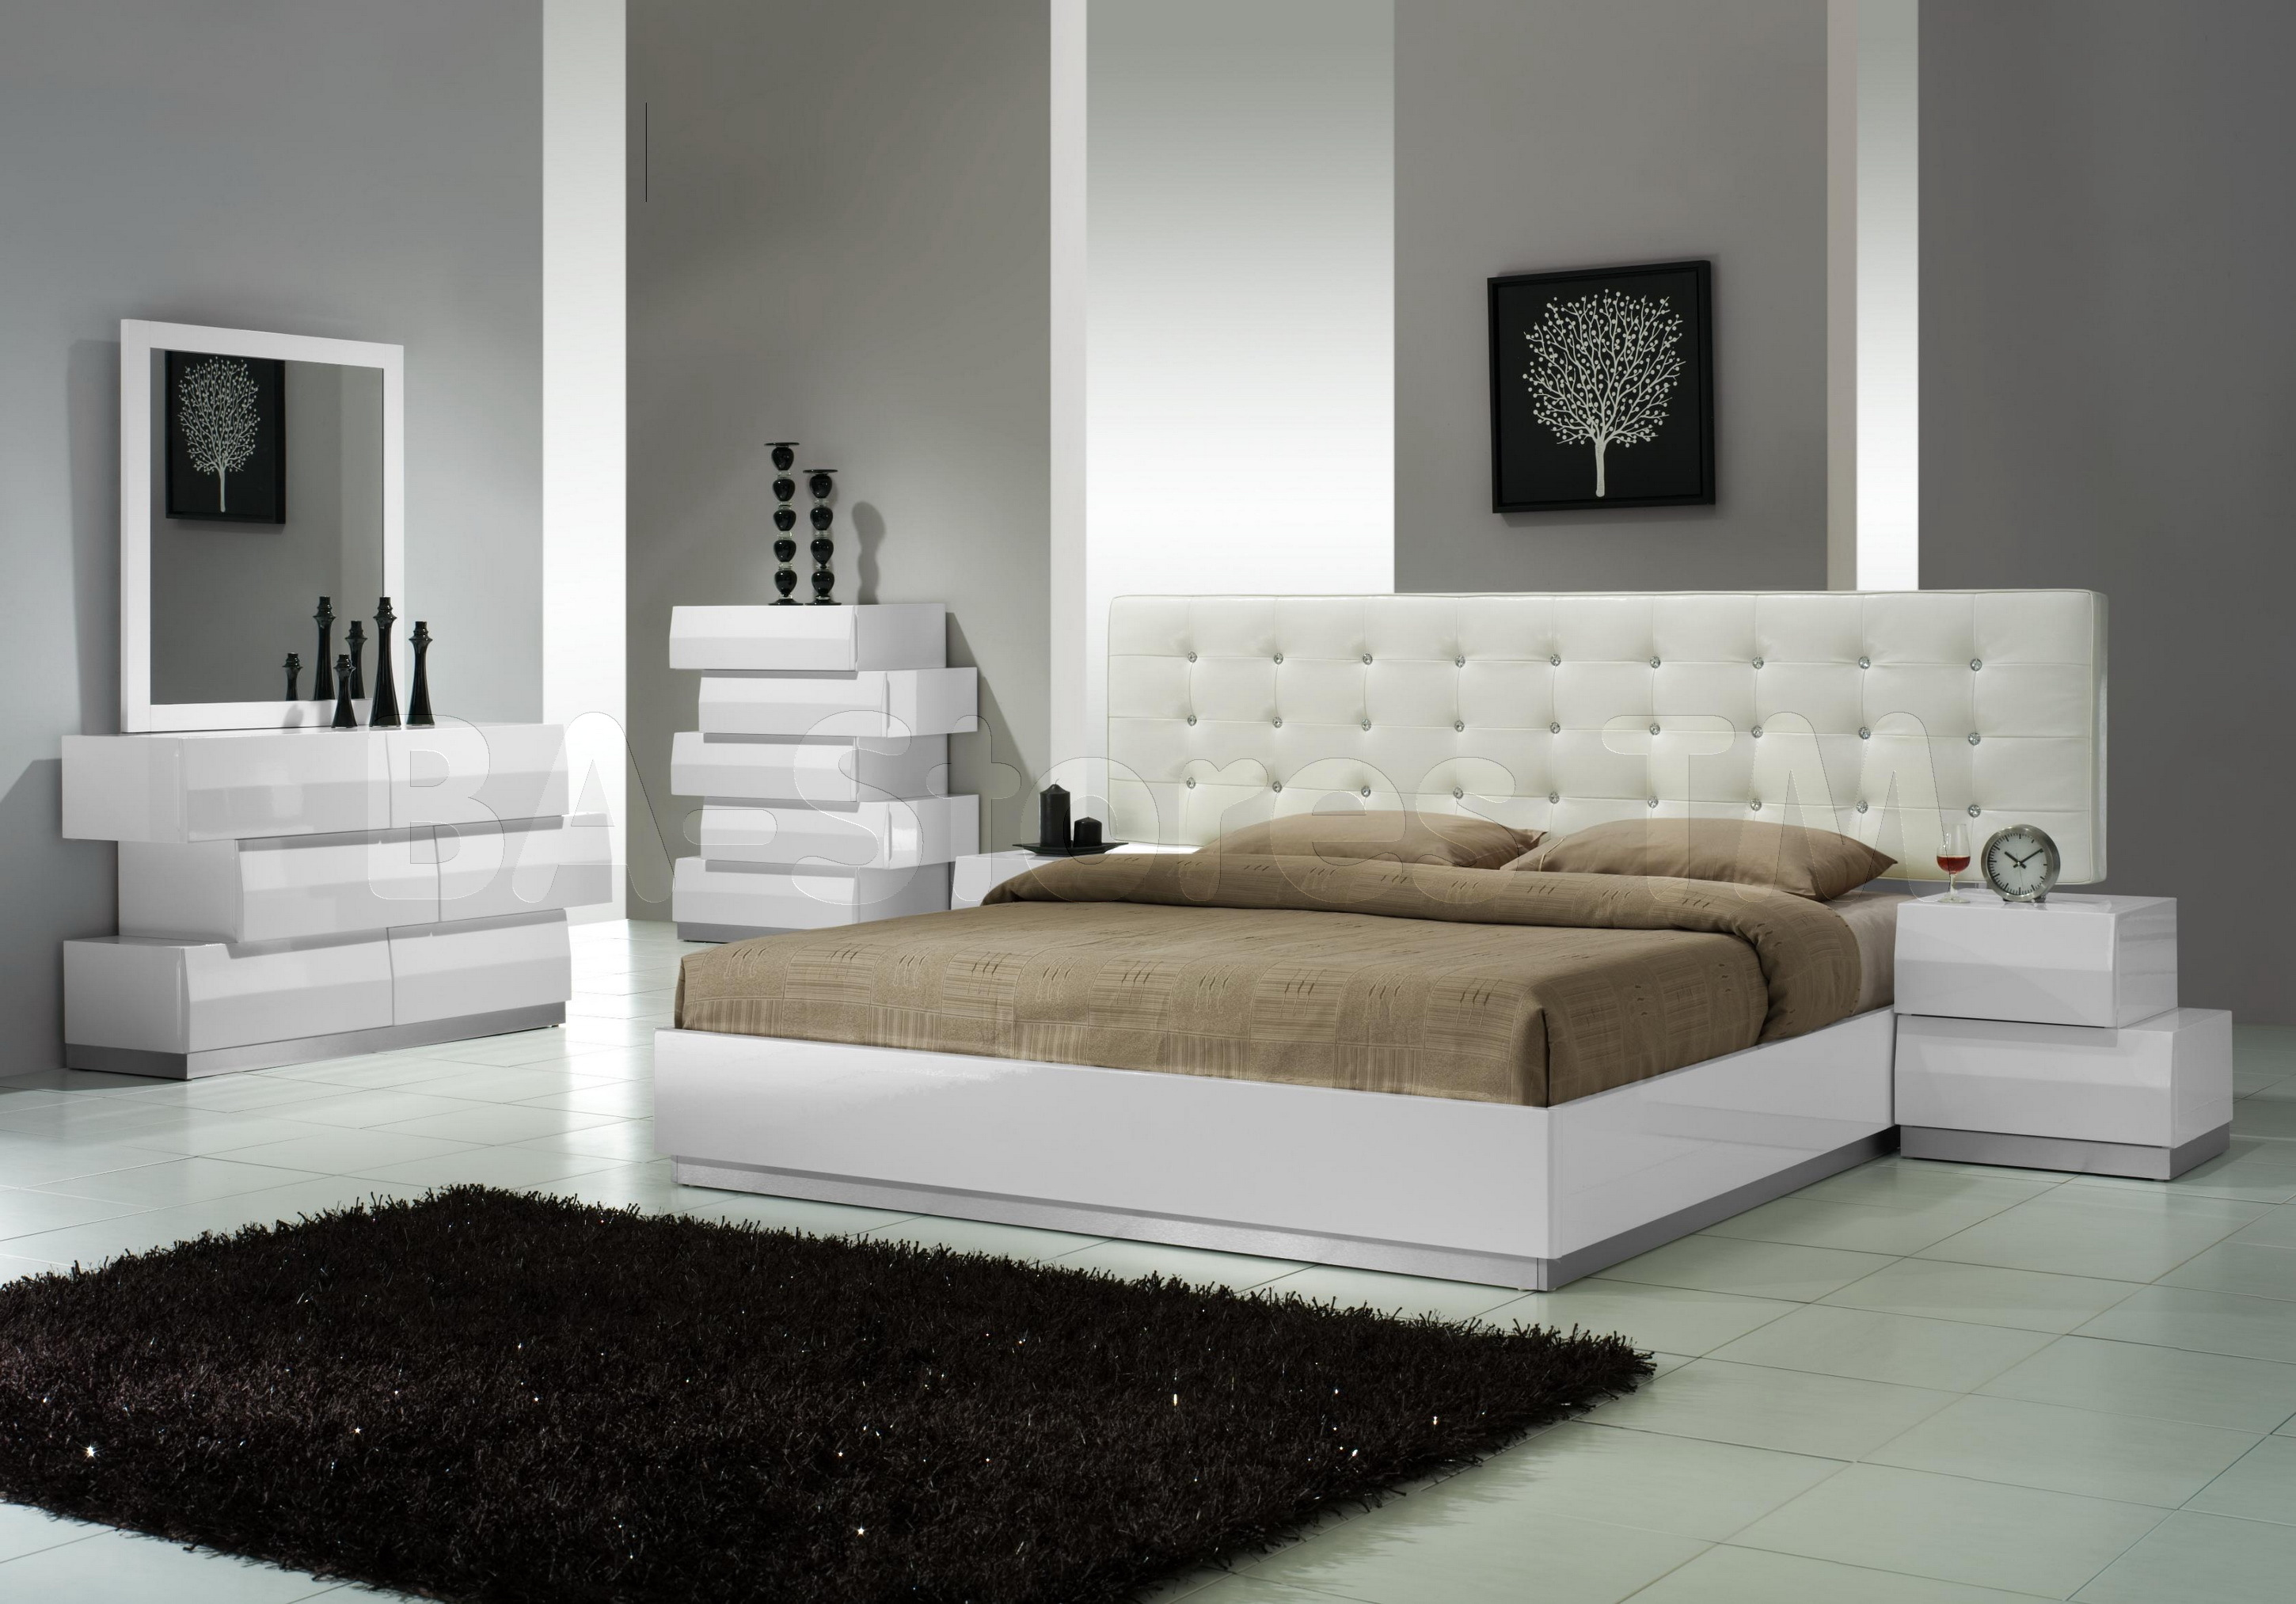 Mattress In Modern Bedroom Ideas (Image 8 of 10)